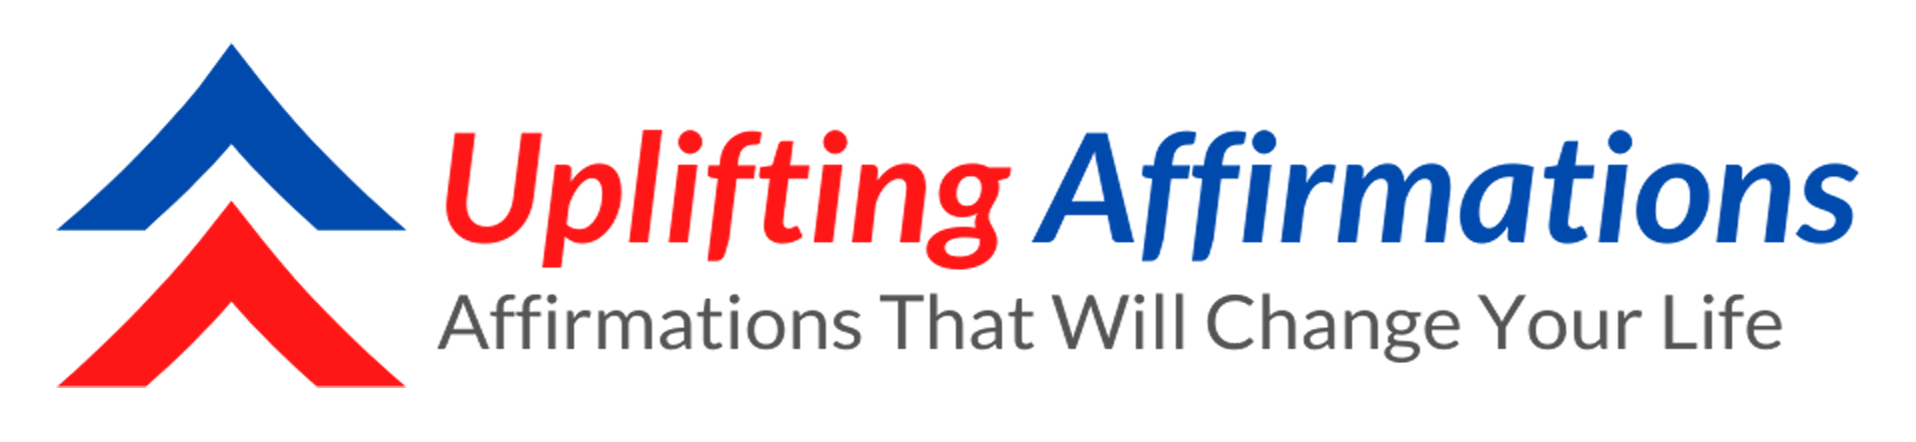 Uplifting Affirmations announces an update and revamp of its Website